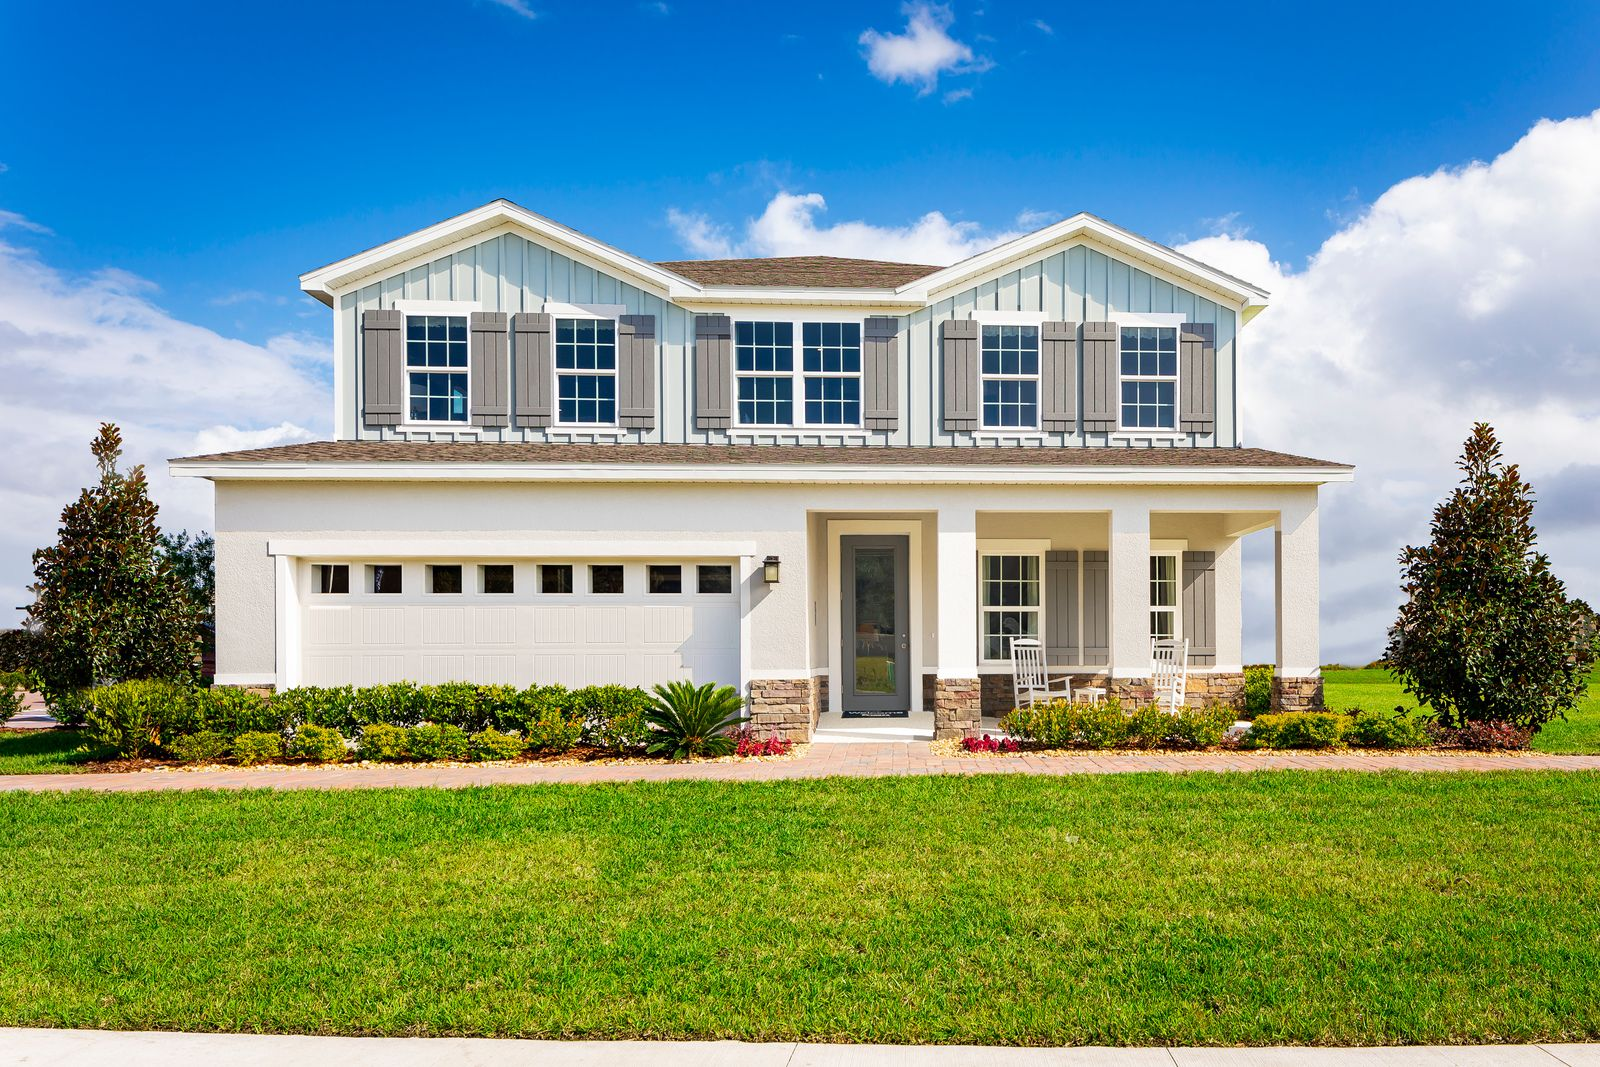 Welcome to Creekside in Kissimmee, FL:Phase 3 Now Available! If you're looking for a spacious home in a gated, resort-style community with a beach-entry pool, playground, and NO CDD Fees, Schedule your visittoday!